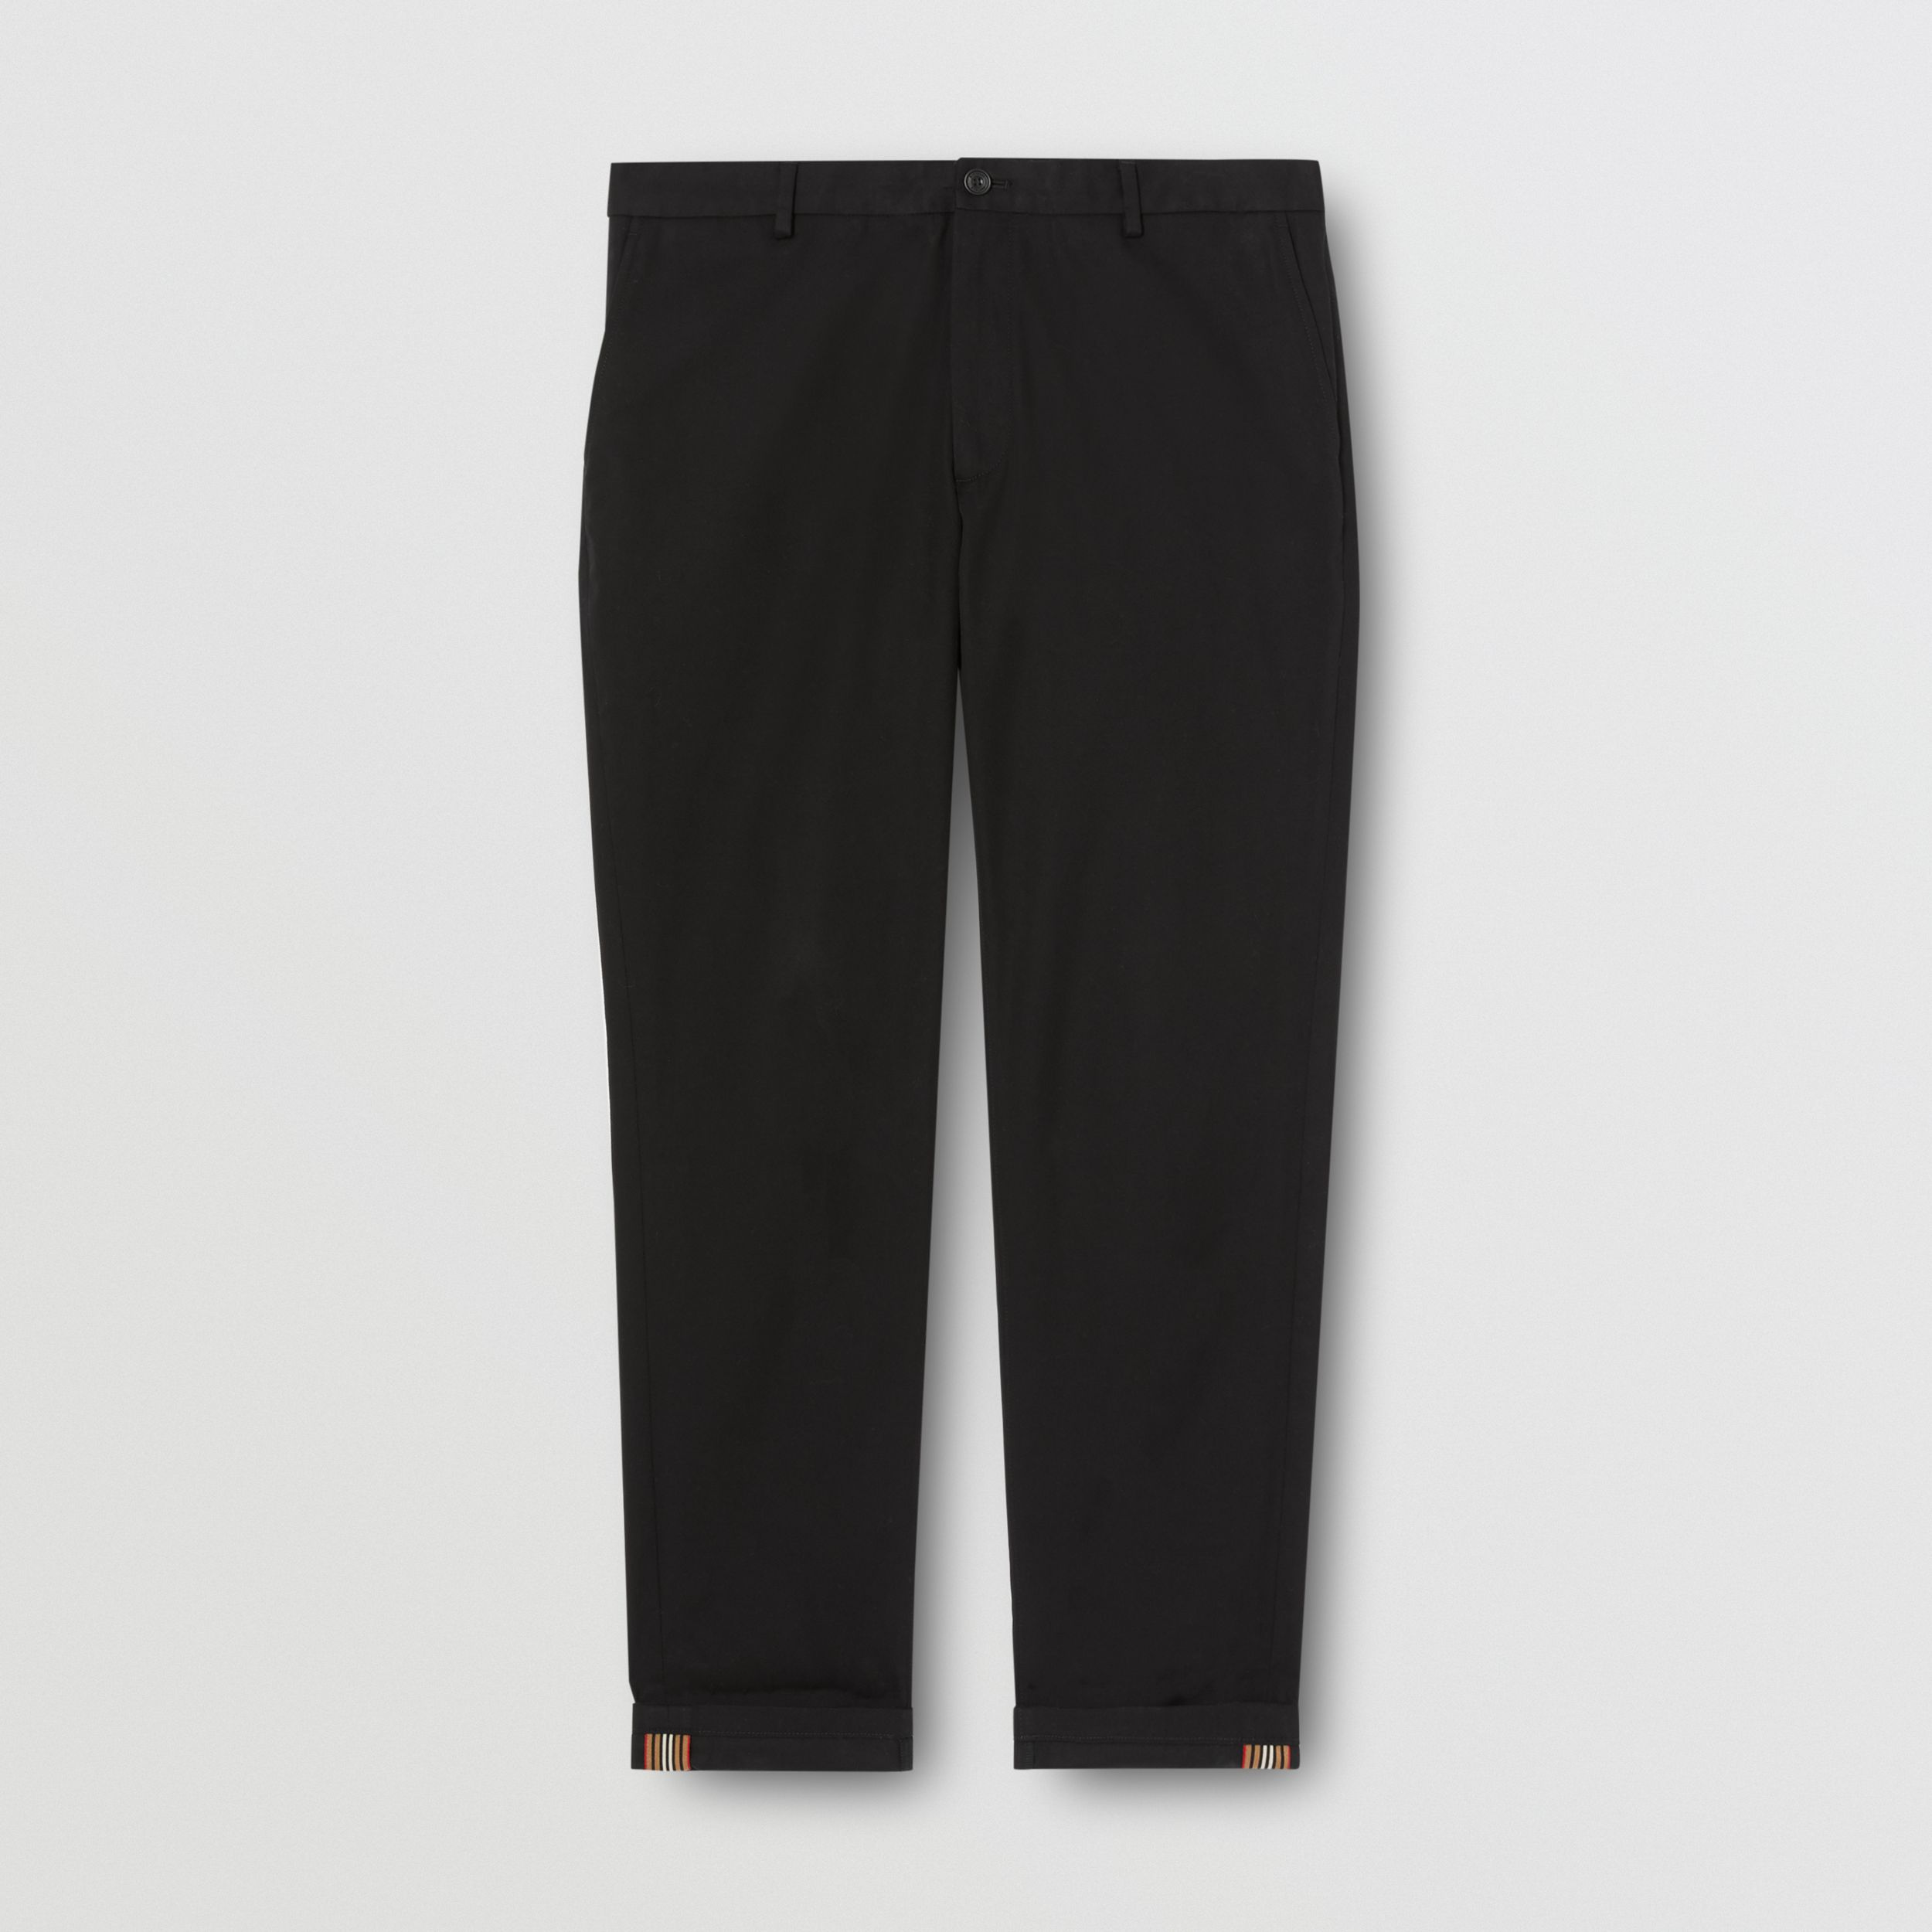 Slim Fit Cotton Chinos in Black - Men | Burberry - 4